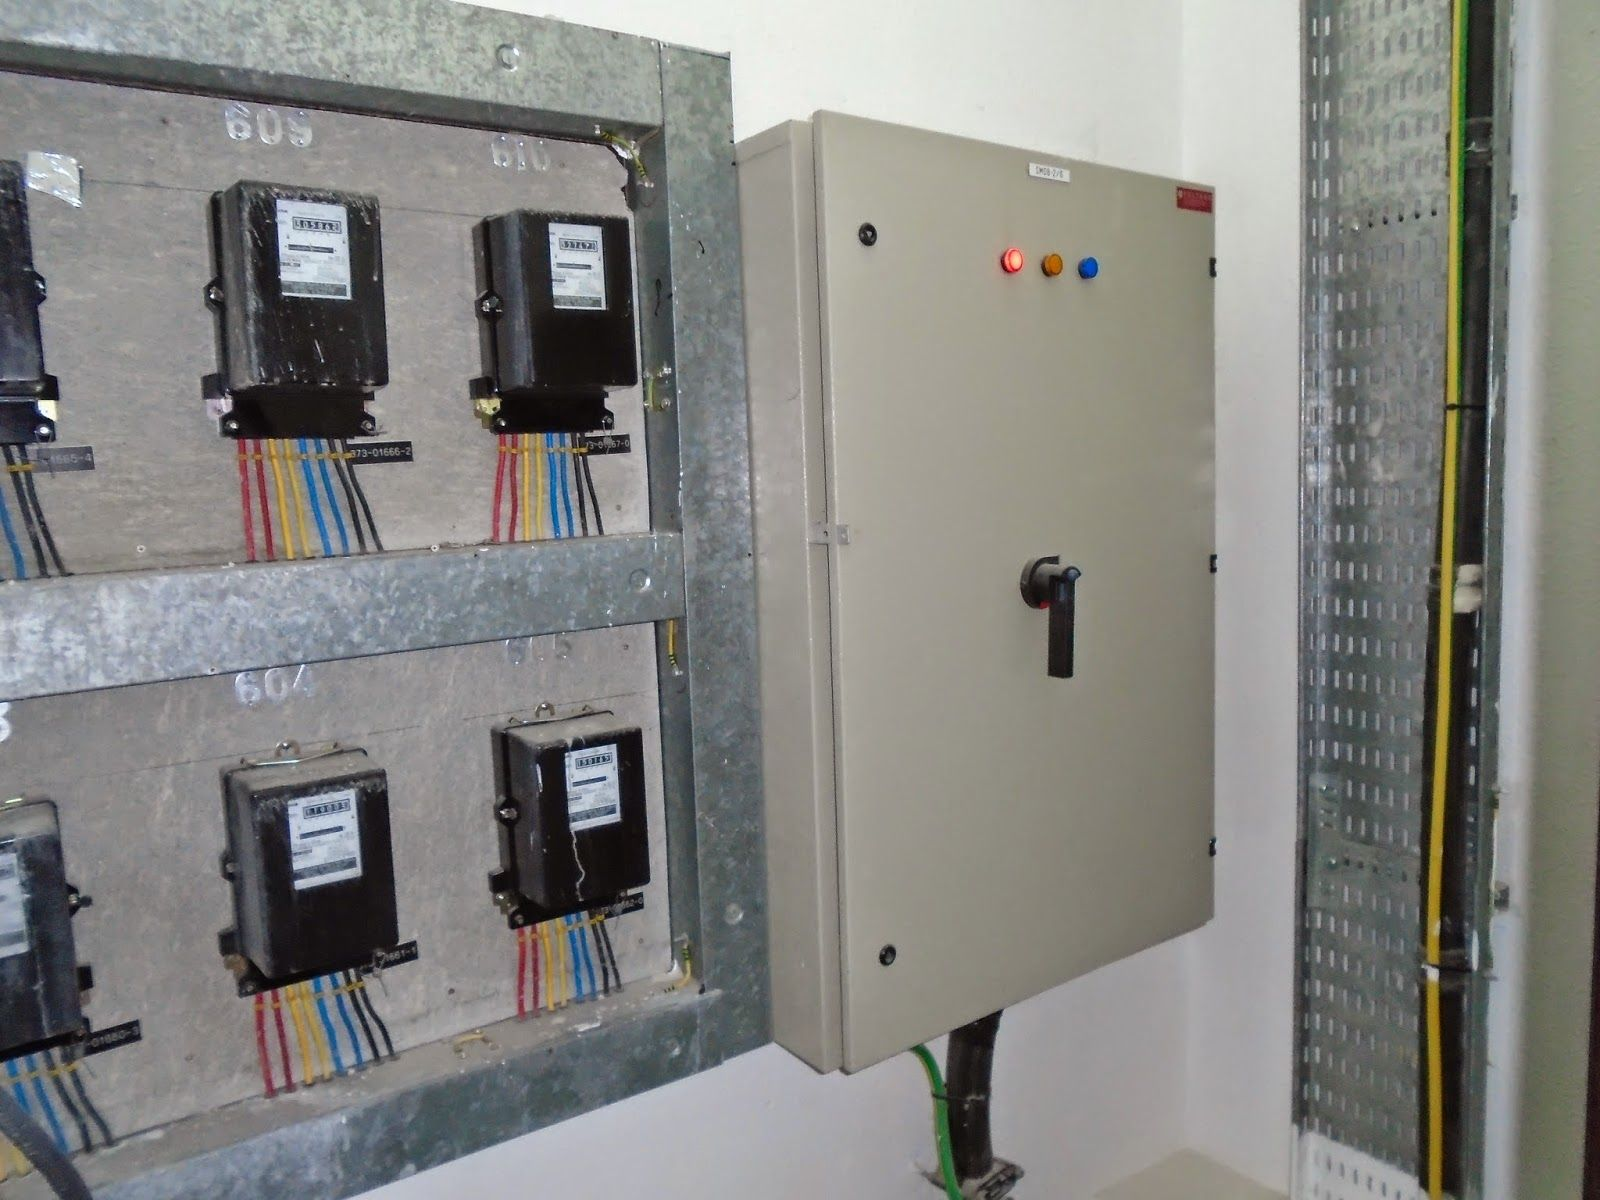 Electrical Wiring In Bangladesh Smdb And Meter Basic Digital Panel Diagram